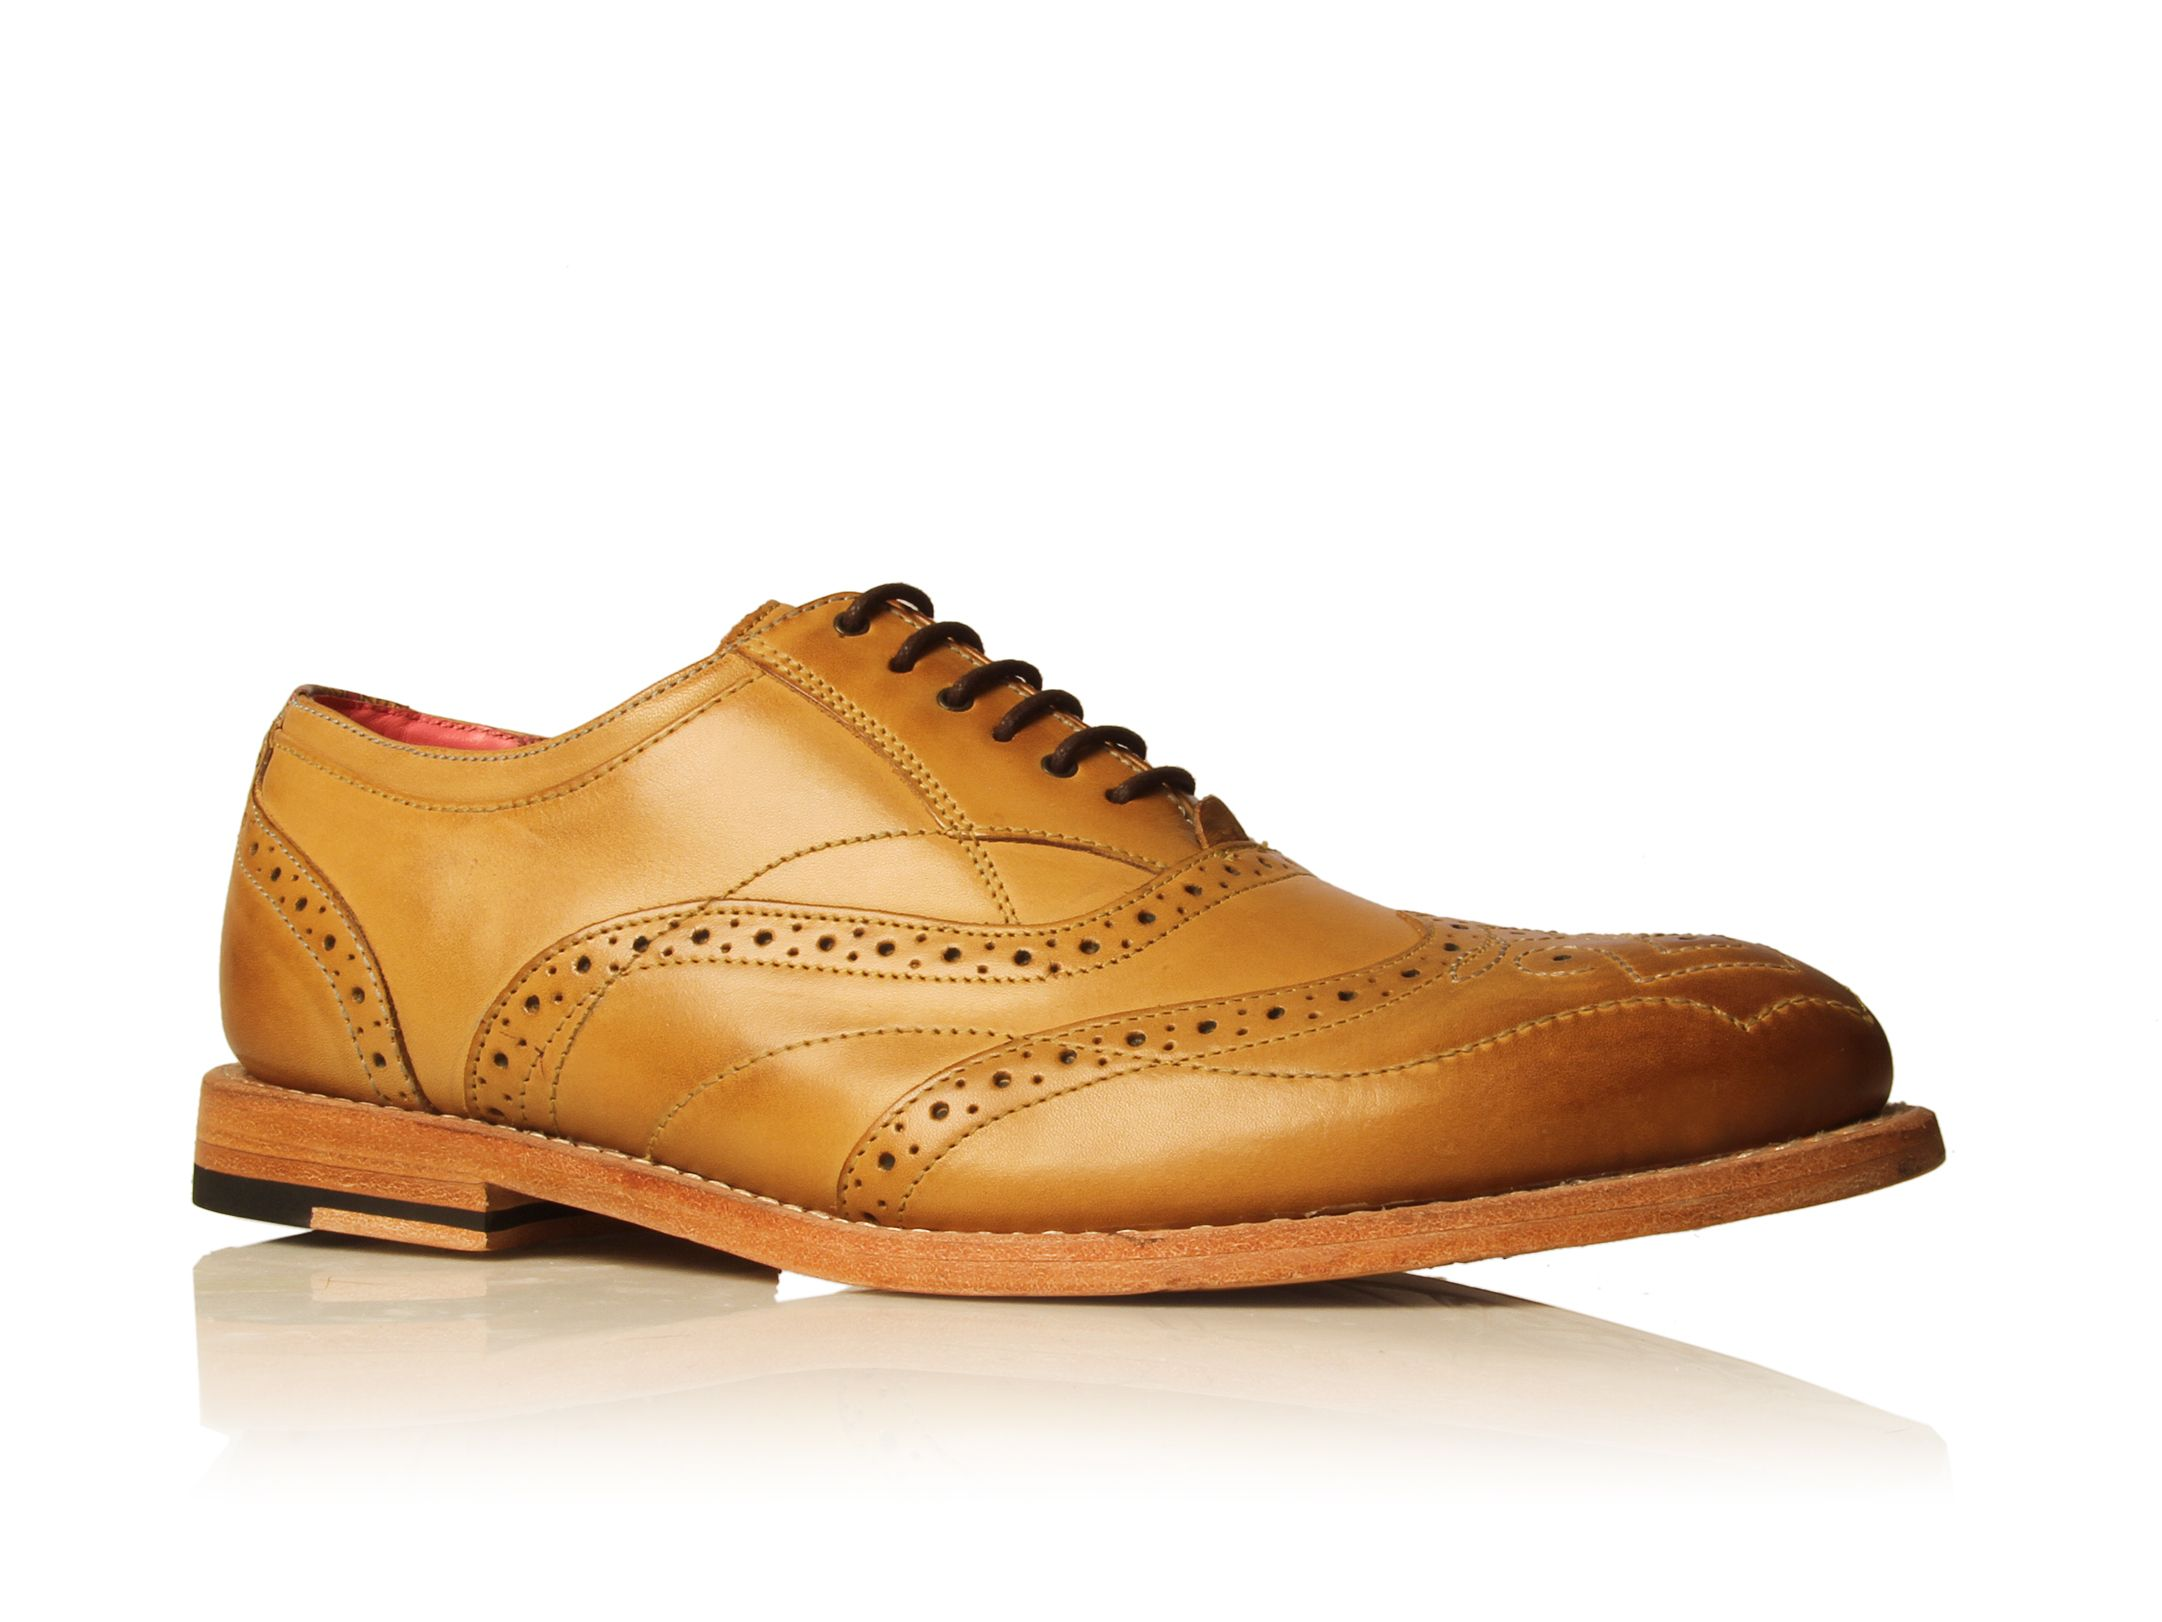 Cashback Delsin 2 lace up shoes Tan by Ted Baker 11